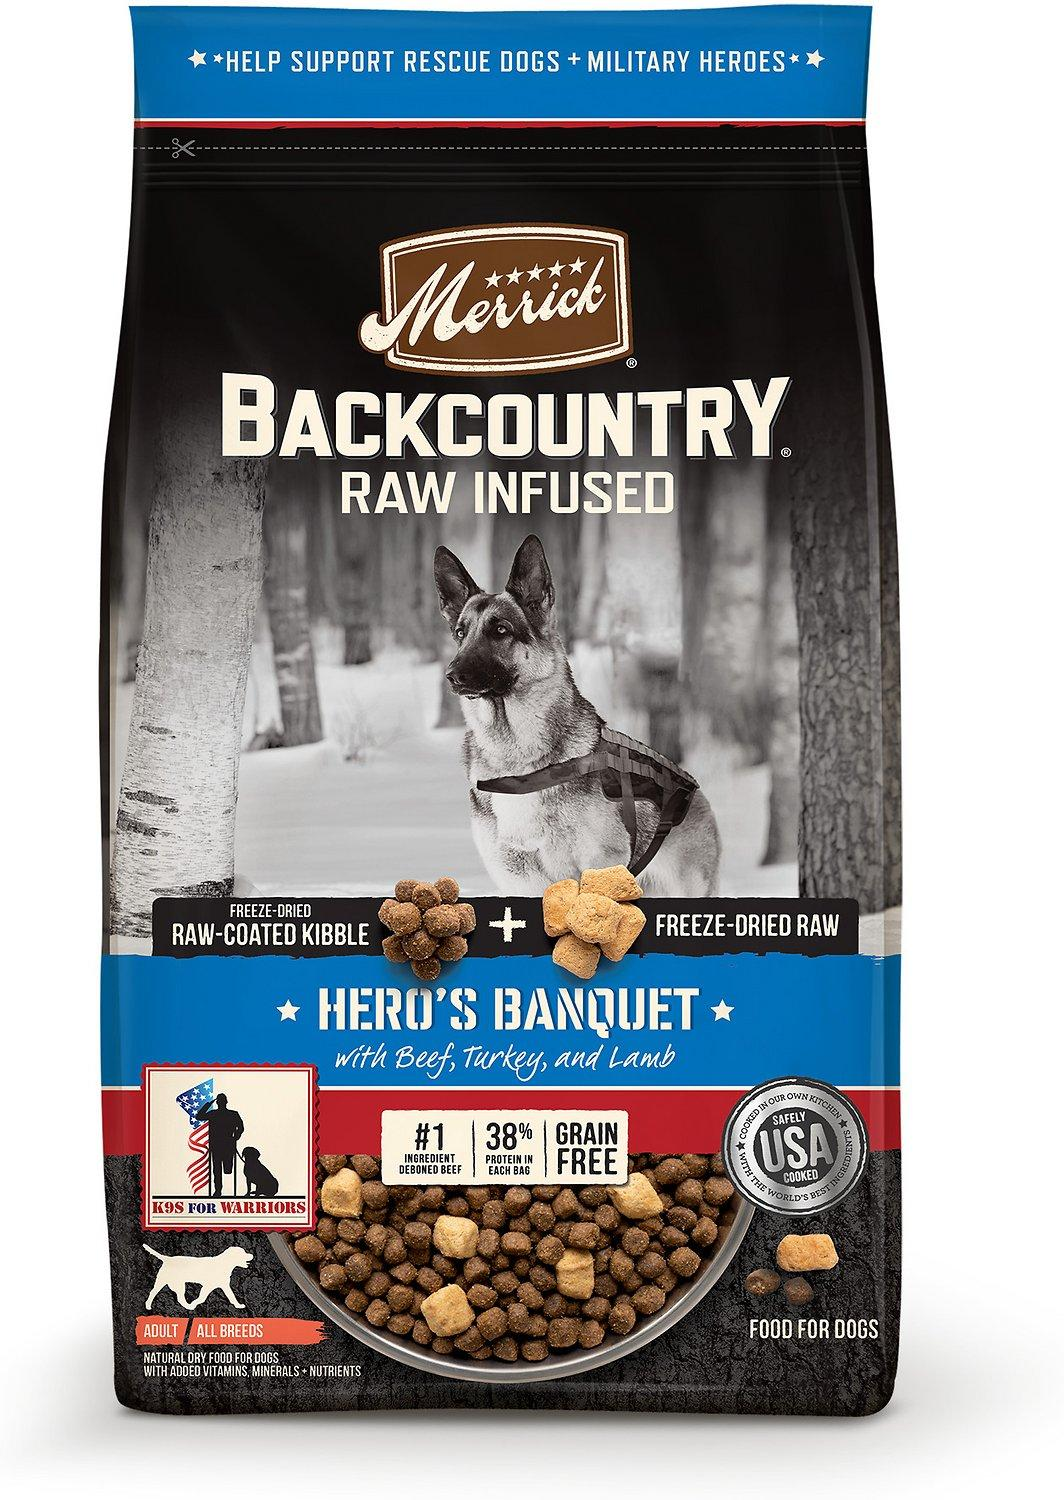 Merrick Backcountry Raw Infused Hero's Banquet Freeze-Dried Dry Dog Food, 10-lb